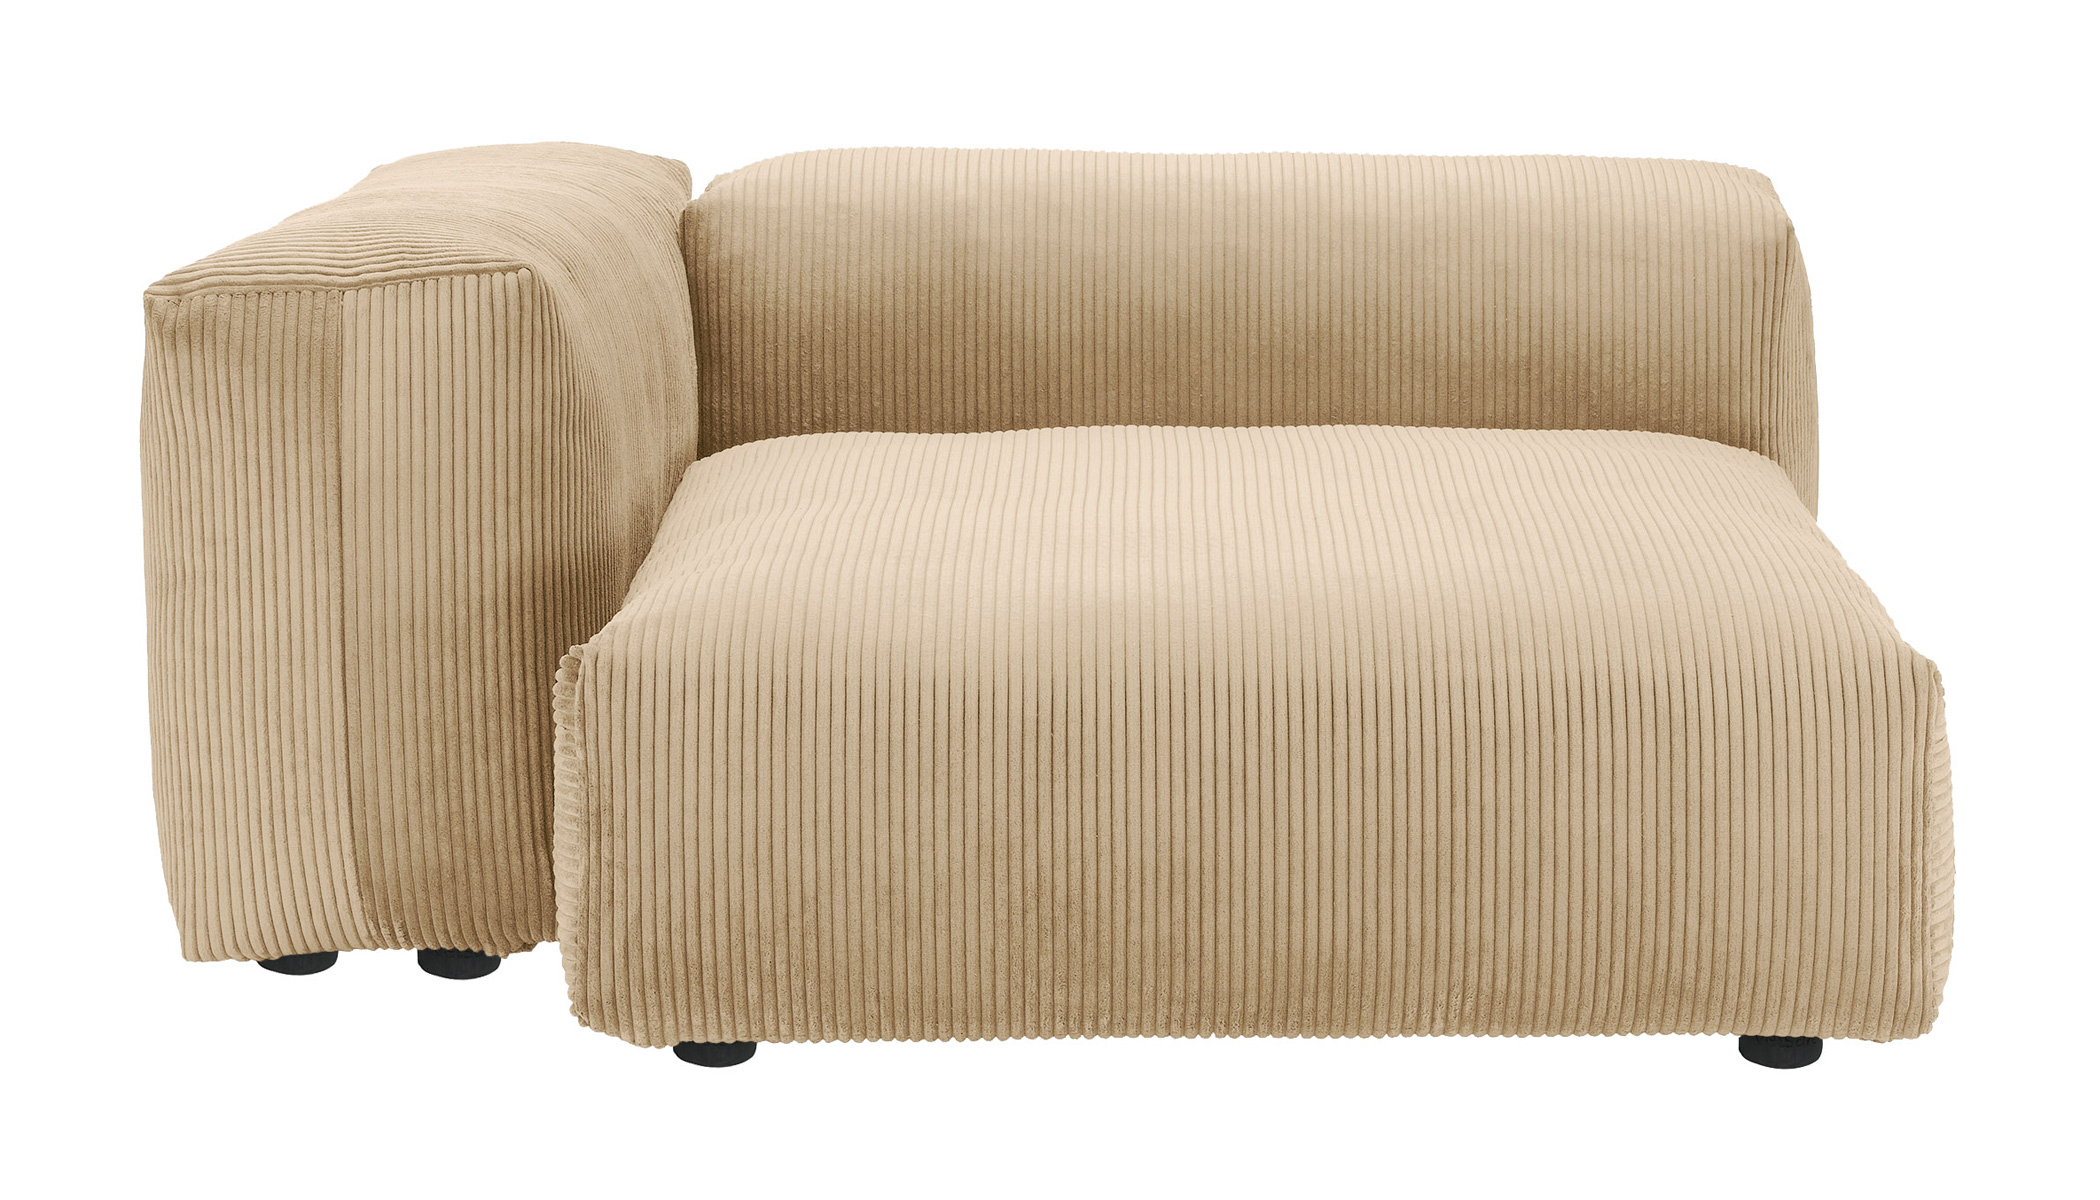 Sofa 1 Large 2 Side Cord Velours sand